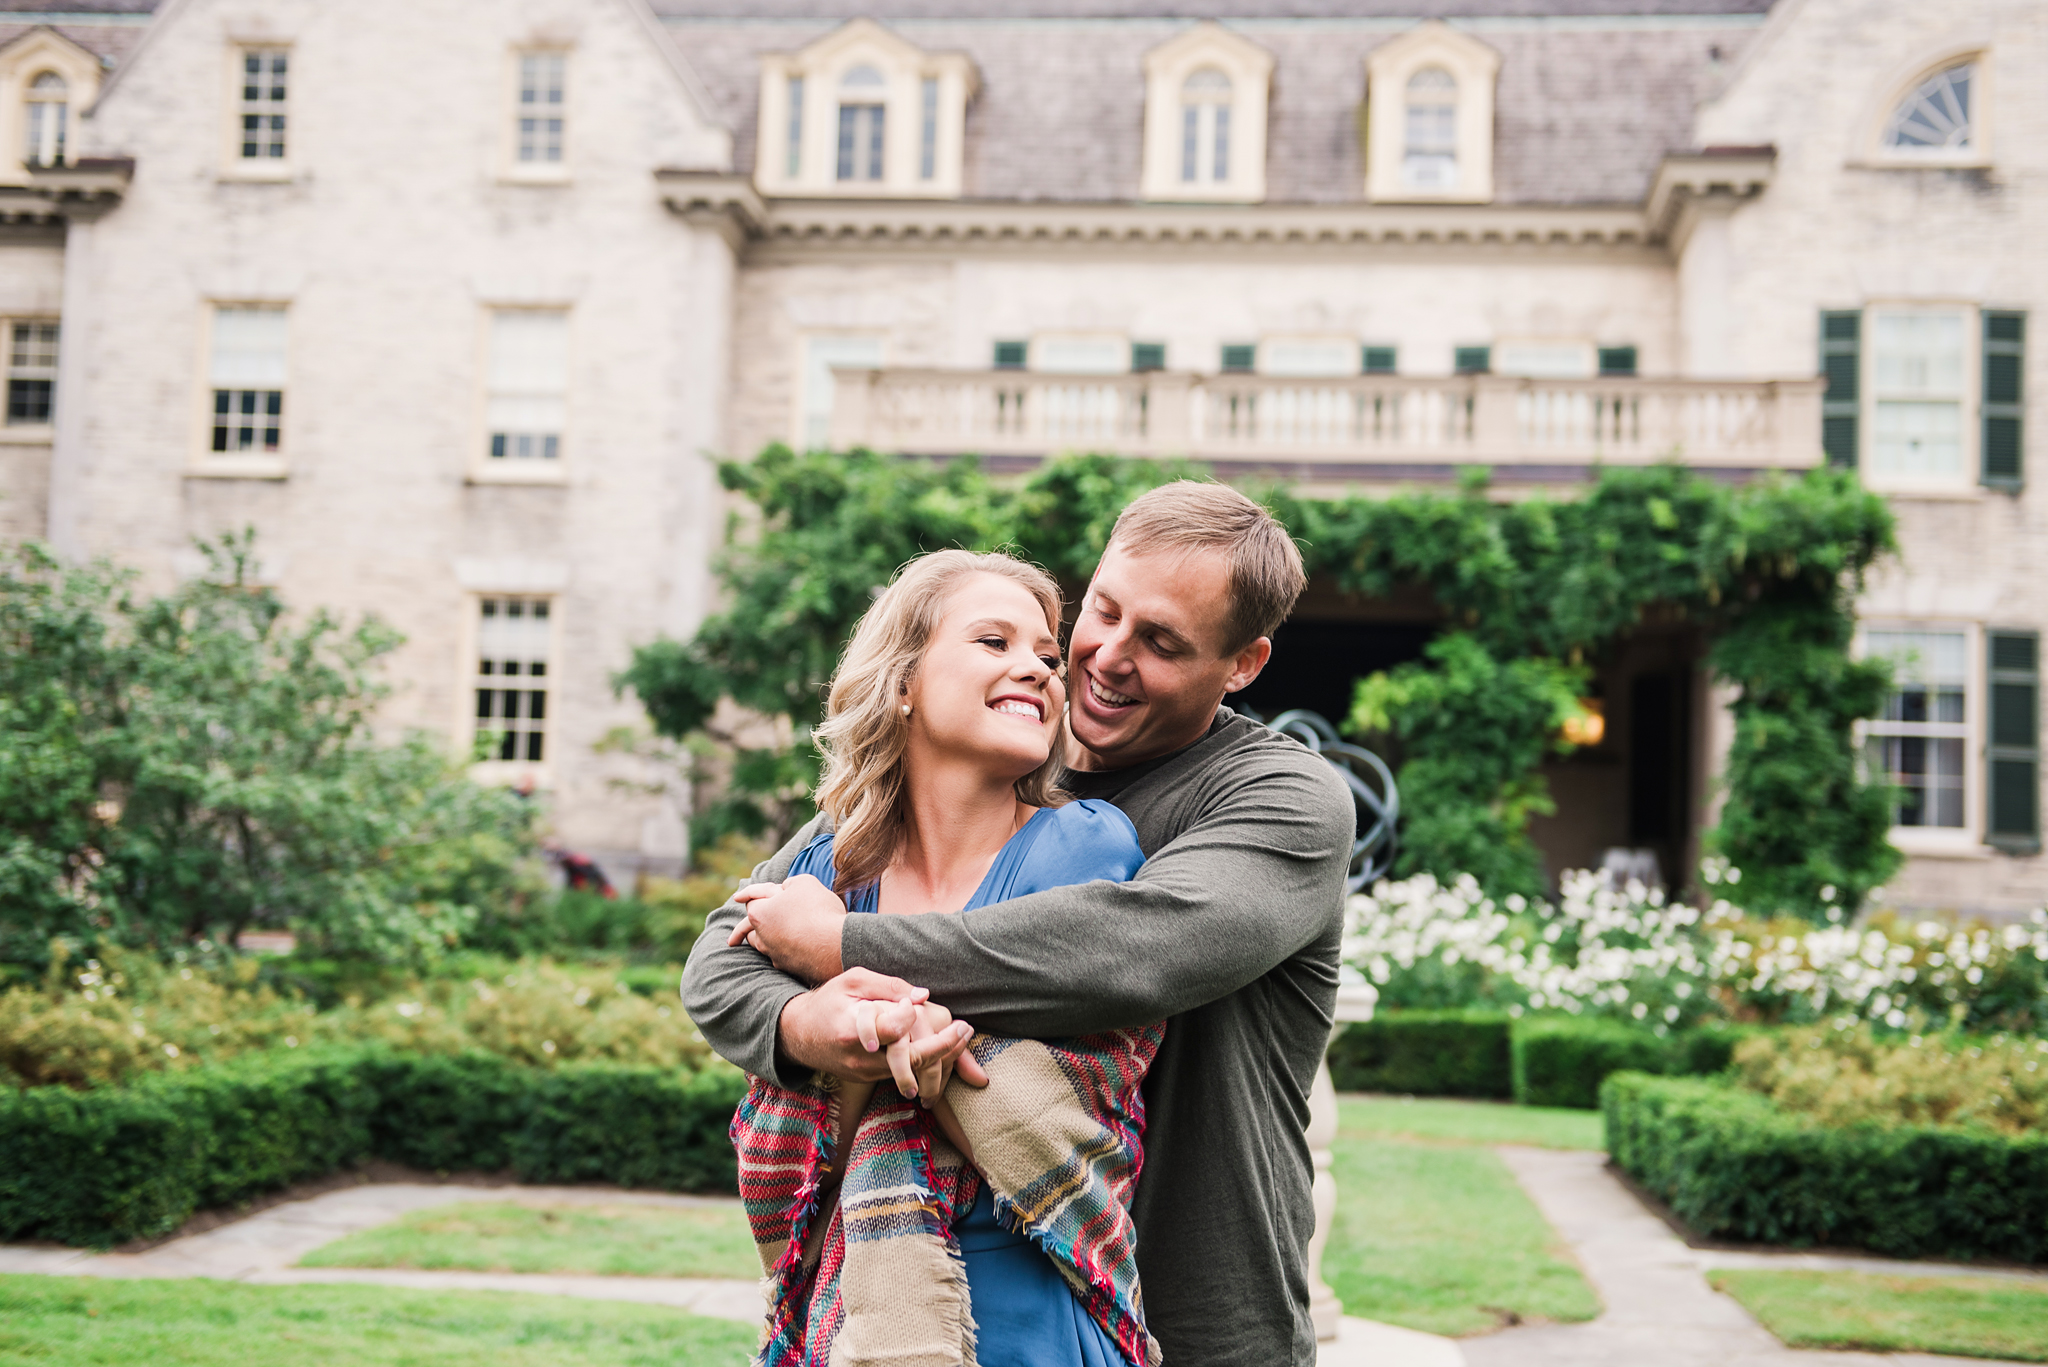 George_Eastman_House_Rochester_Yacht_Club_Rochester_Engagement_Session_JILL_STUDIO_Rochester_NY_Photographer_DSC_8009.jpg